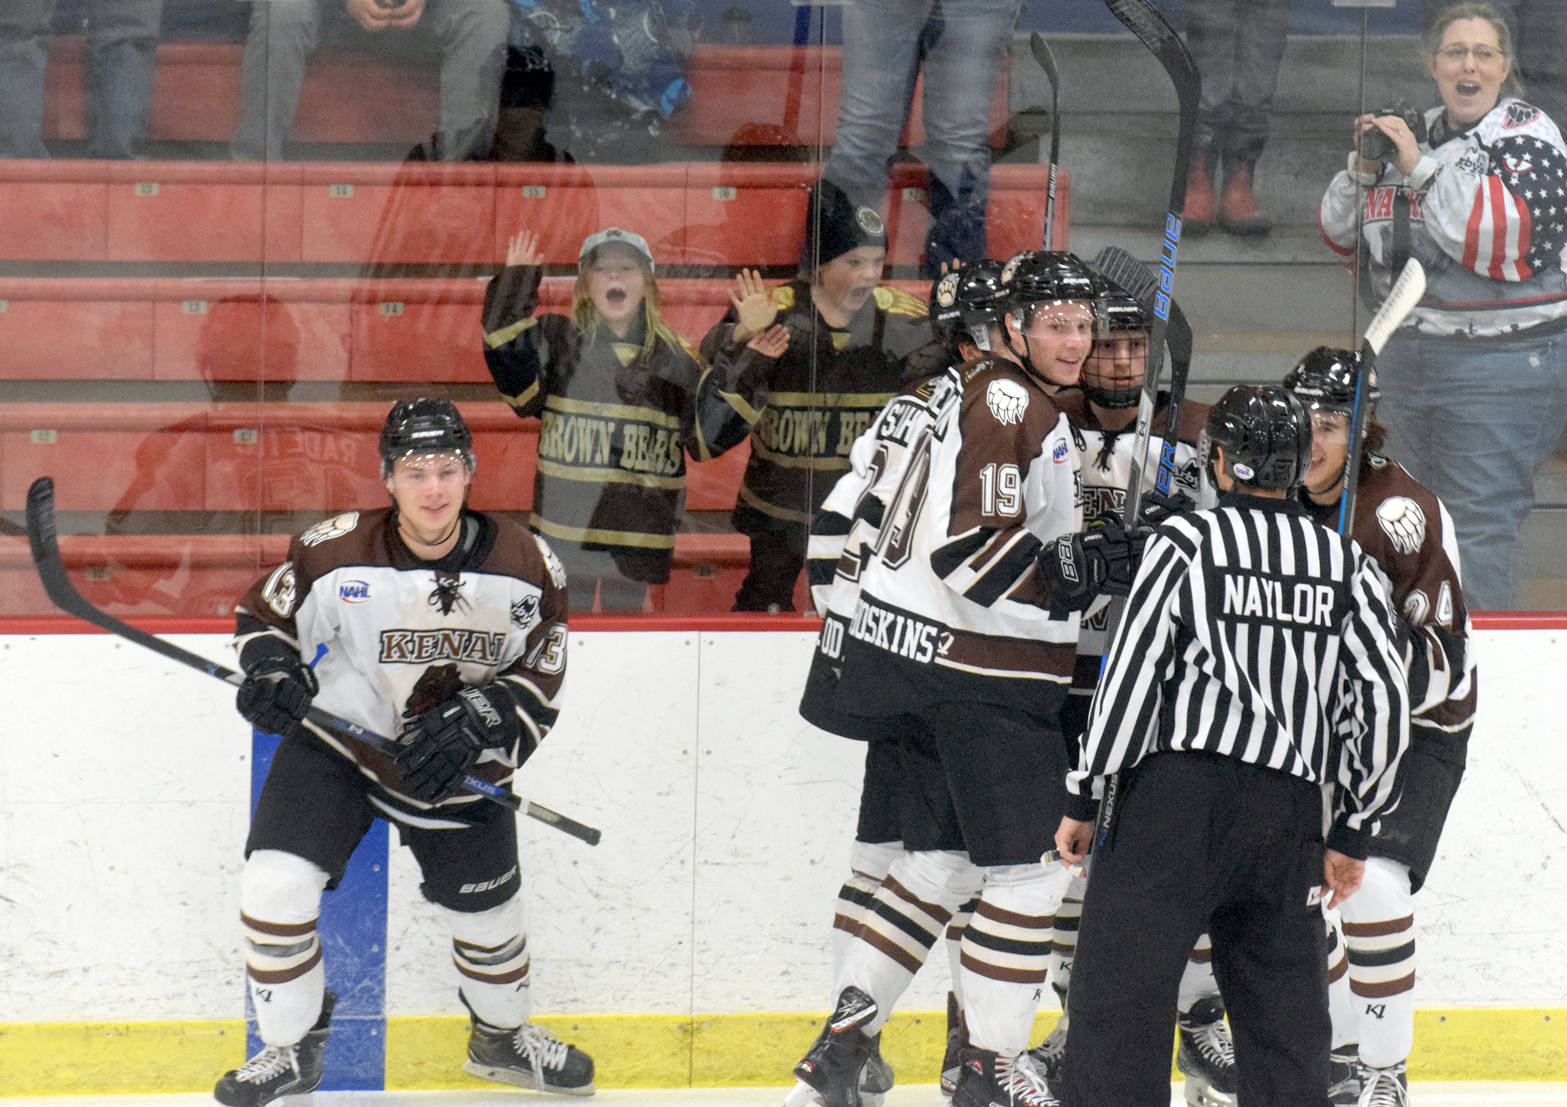 Kenai River's Luke Radetic (far left) and linemates celebrate his goal just 20 seconds into the game Friday, Nov. 10, 2017, at the Soldotna Regional Sports Complex. (Photo by Jeff Helminiak/Peninsula Clarion)